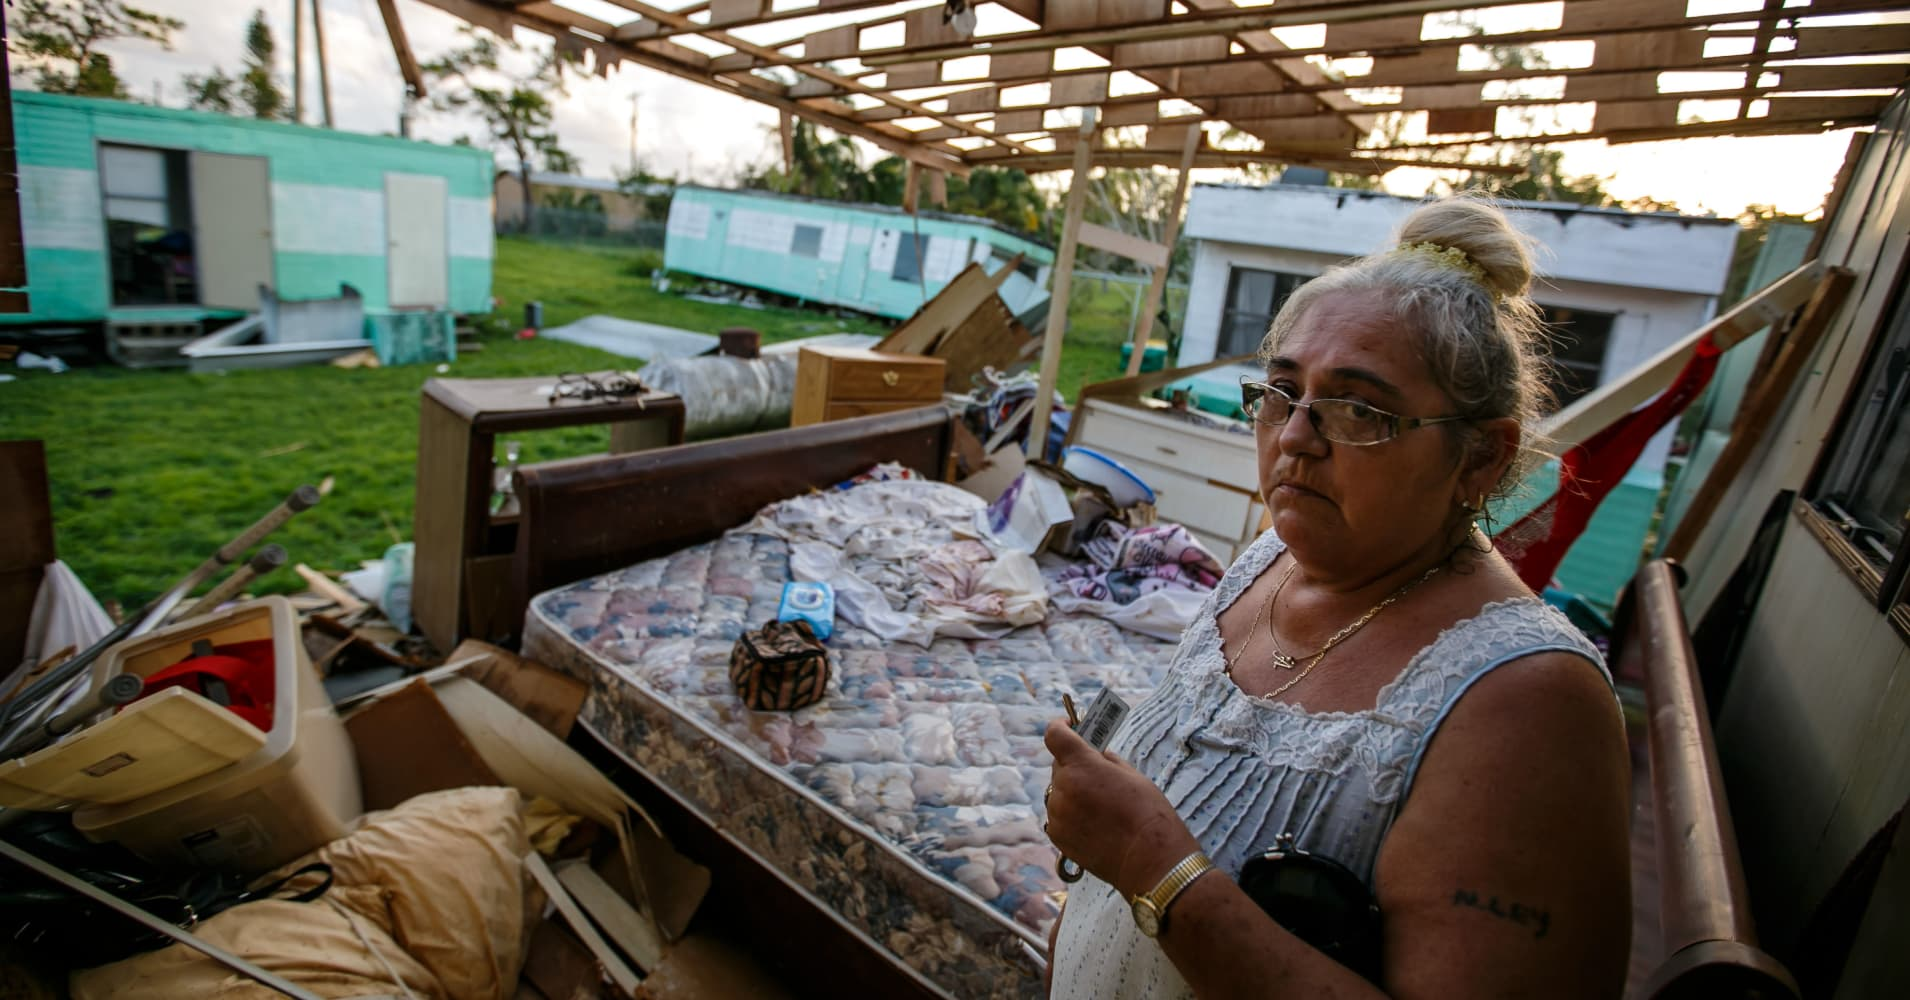 Alice Barber gets emotional as she surveys the damage caused by Hurricane Irma to her trailer home in Immokalee, Fla., on Sept. 11, 2017.